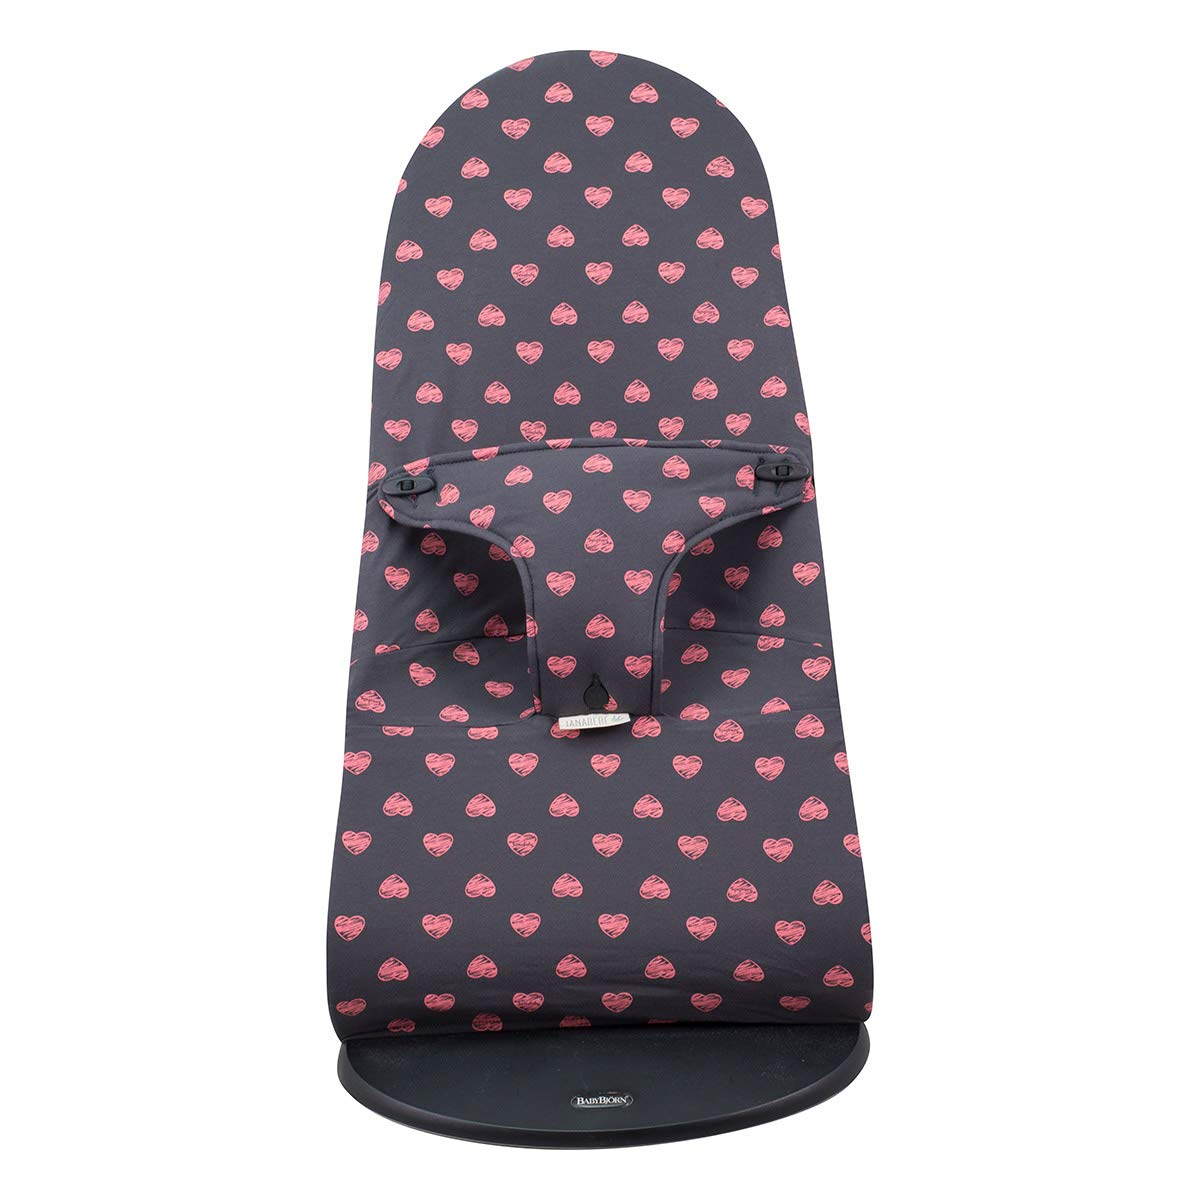 Janabebe Cover Compatible with Baby Bouncer Babybjorn Soft, Balance and Bliss (FLÚOR Heart)